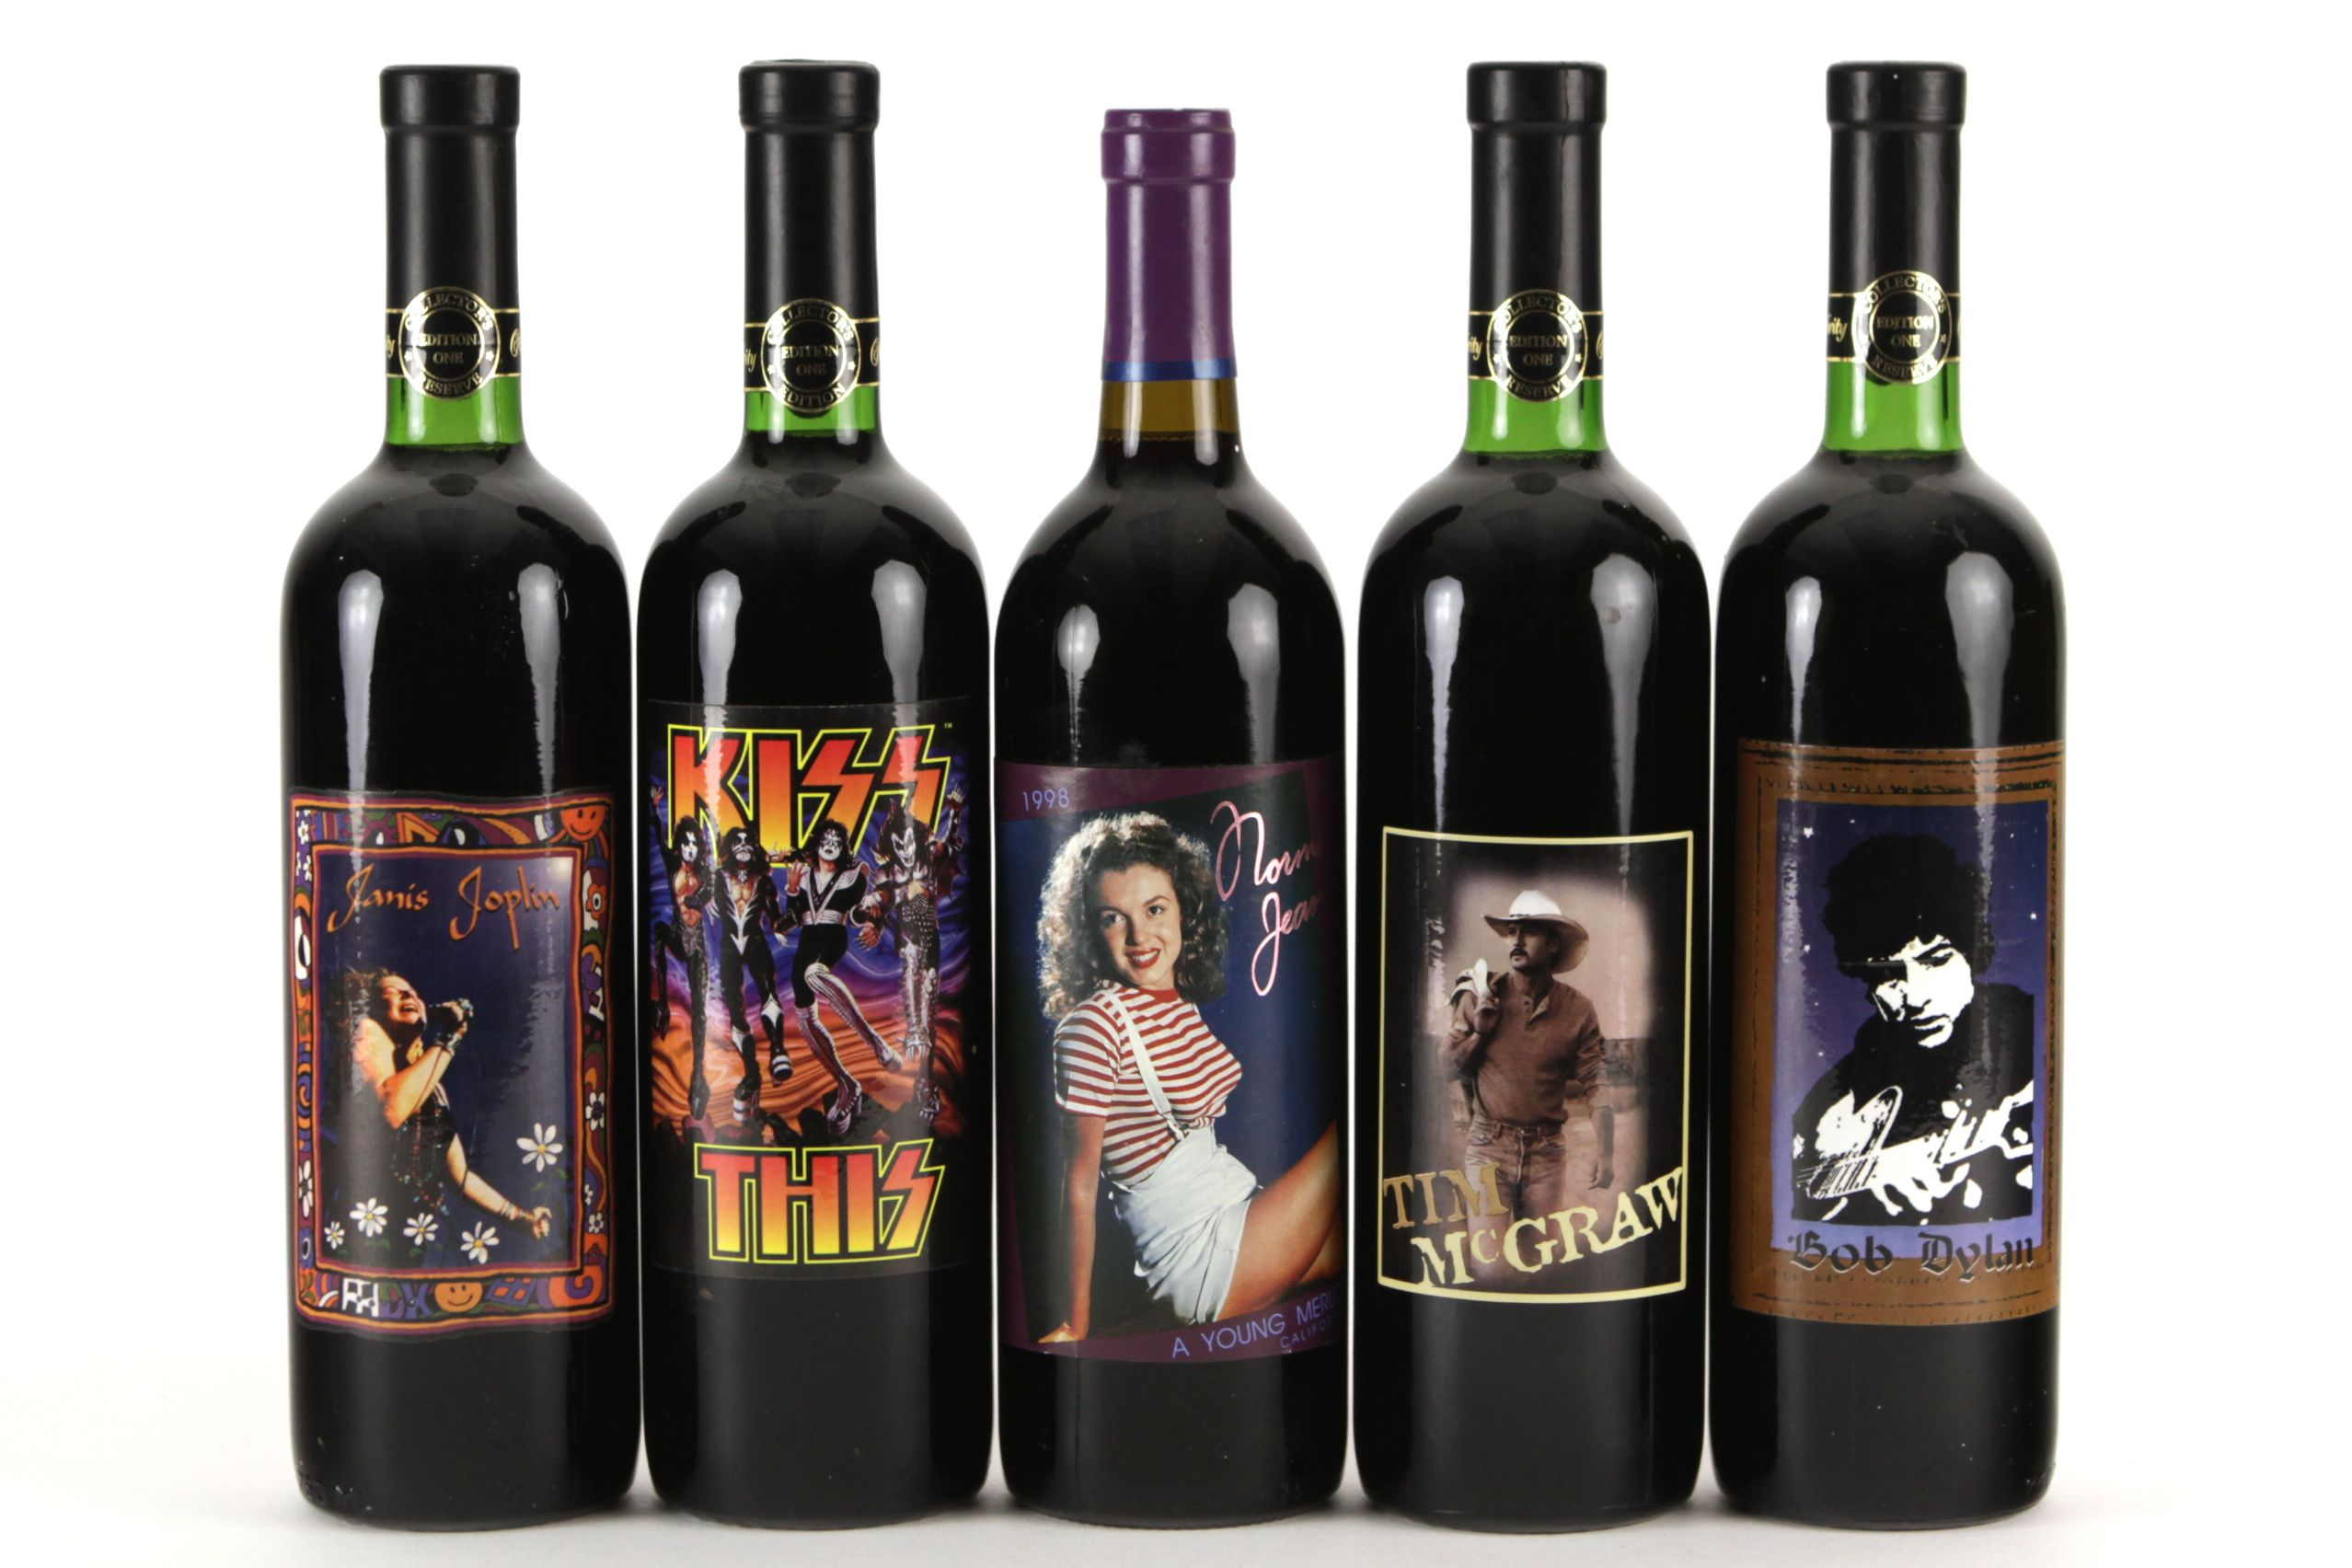 Wines from